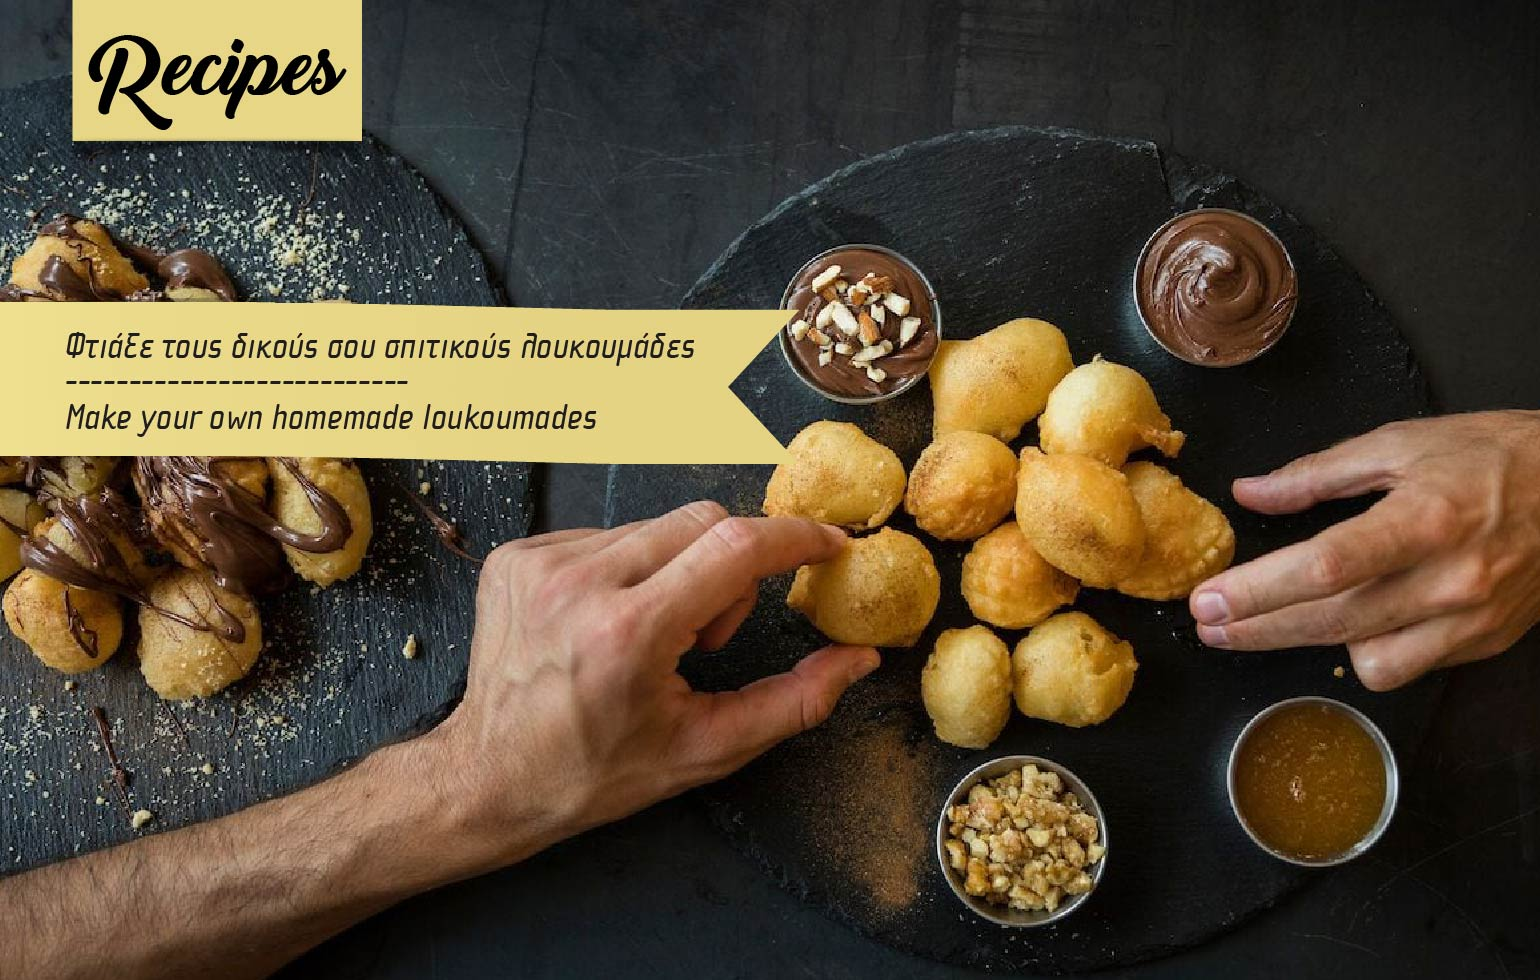 photo from a table with crunches loukoumades